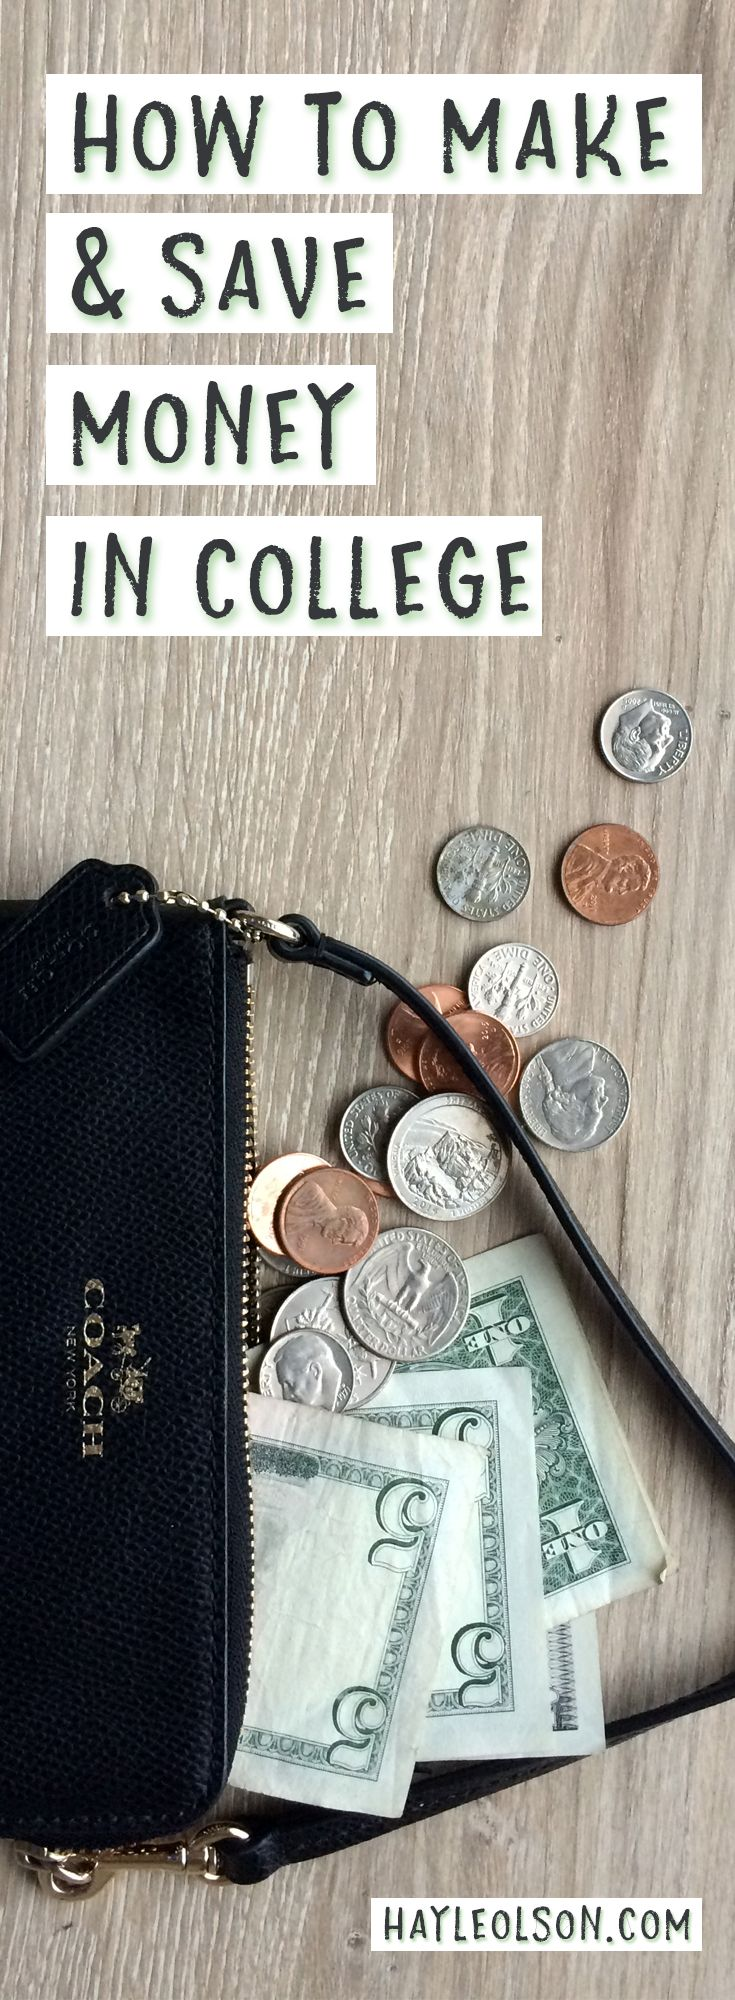 How to make & save money in college. Money tips for students! Click through to read now, or pin to save for later! :) Find my blog at... www.hayleolson.com